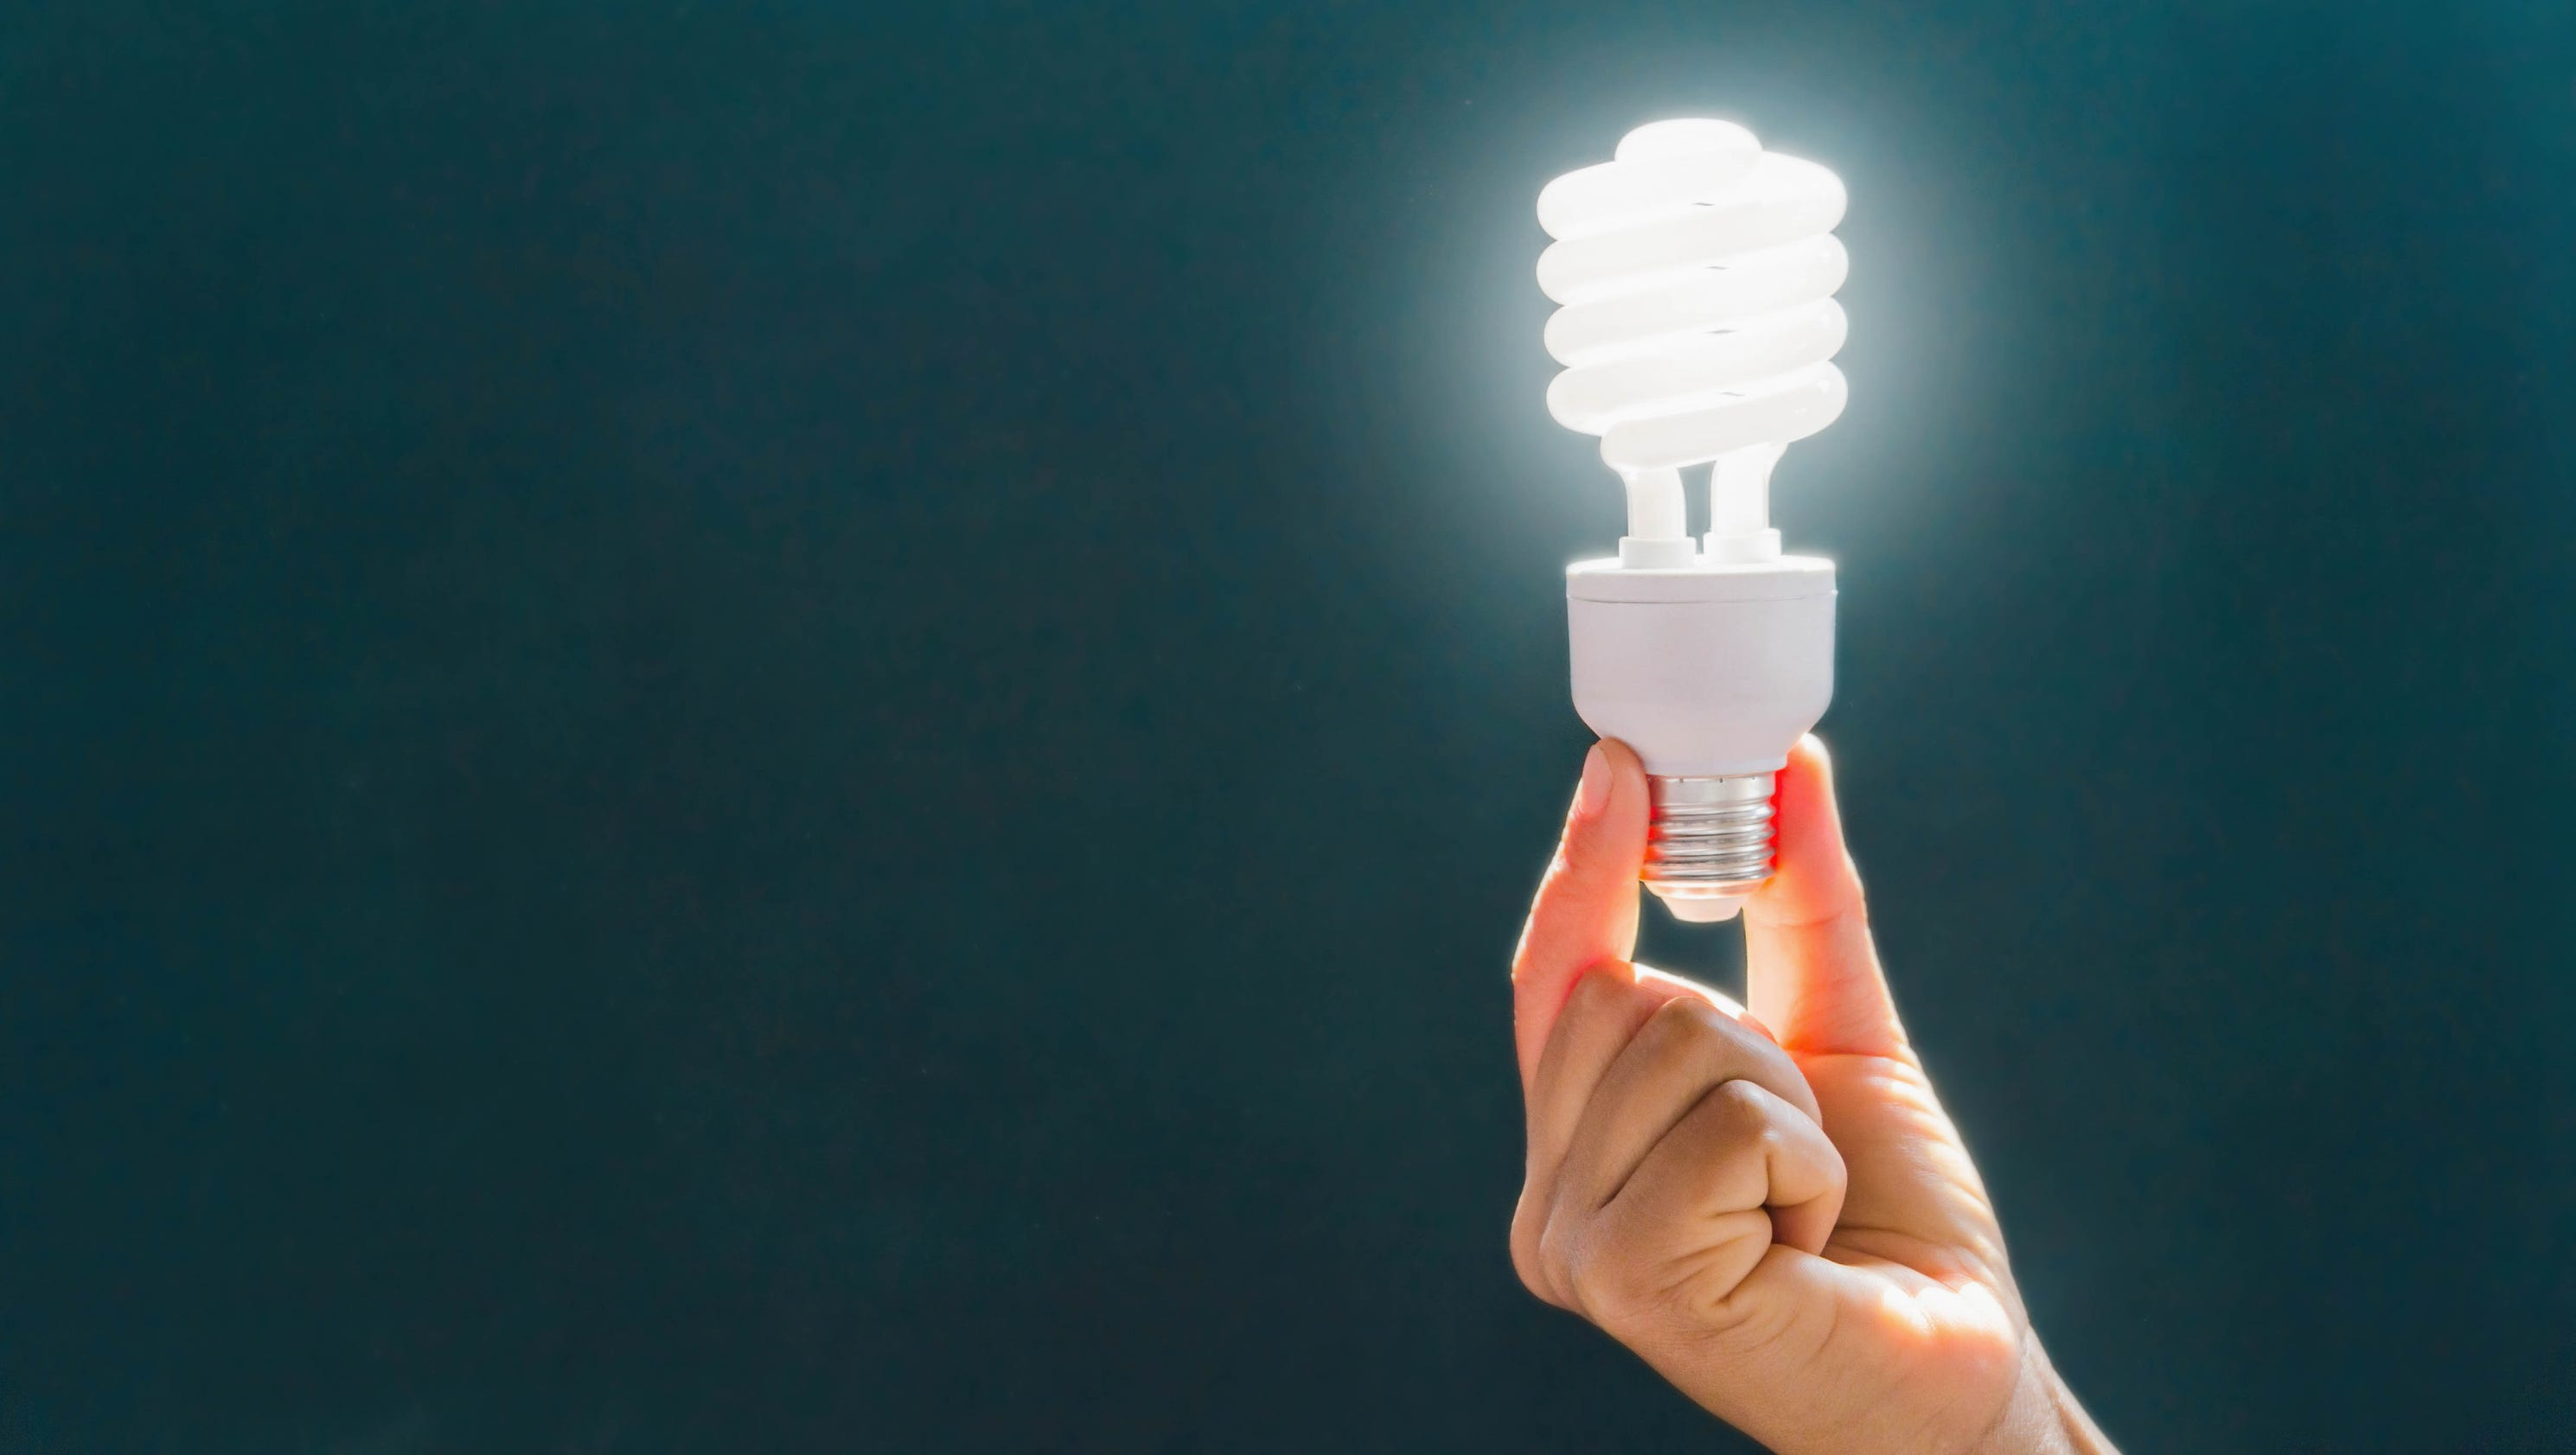 what technologies are available to homeowners to help them conserve energy